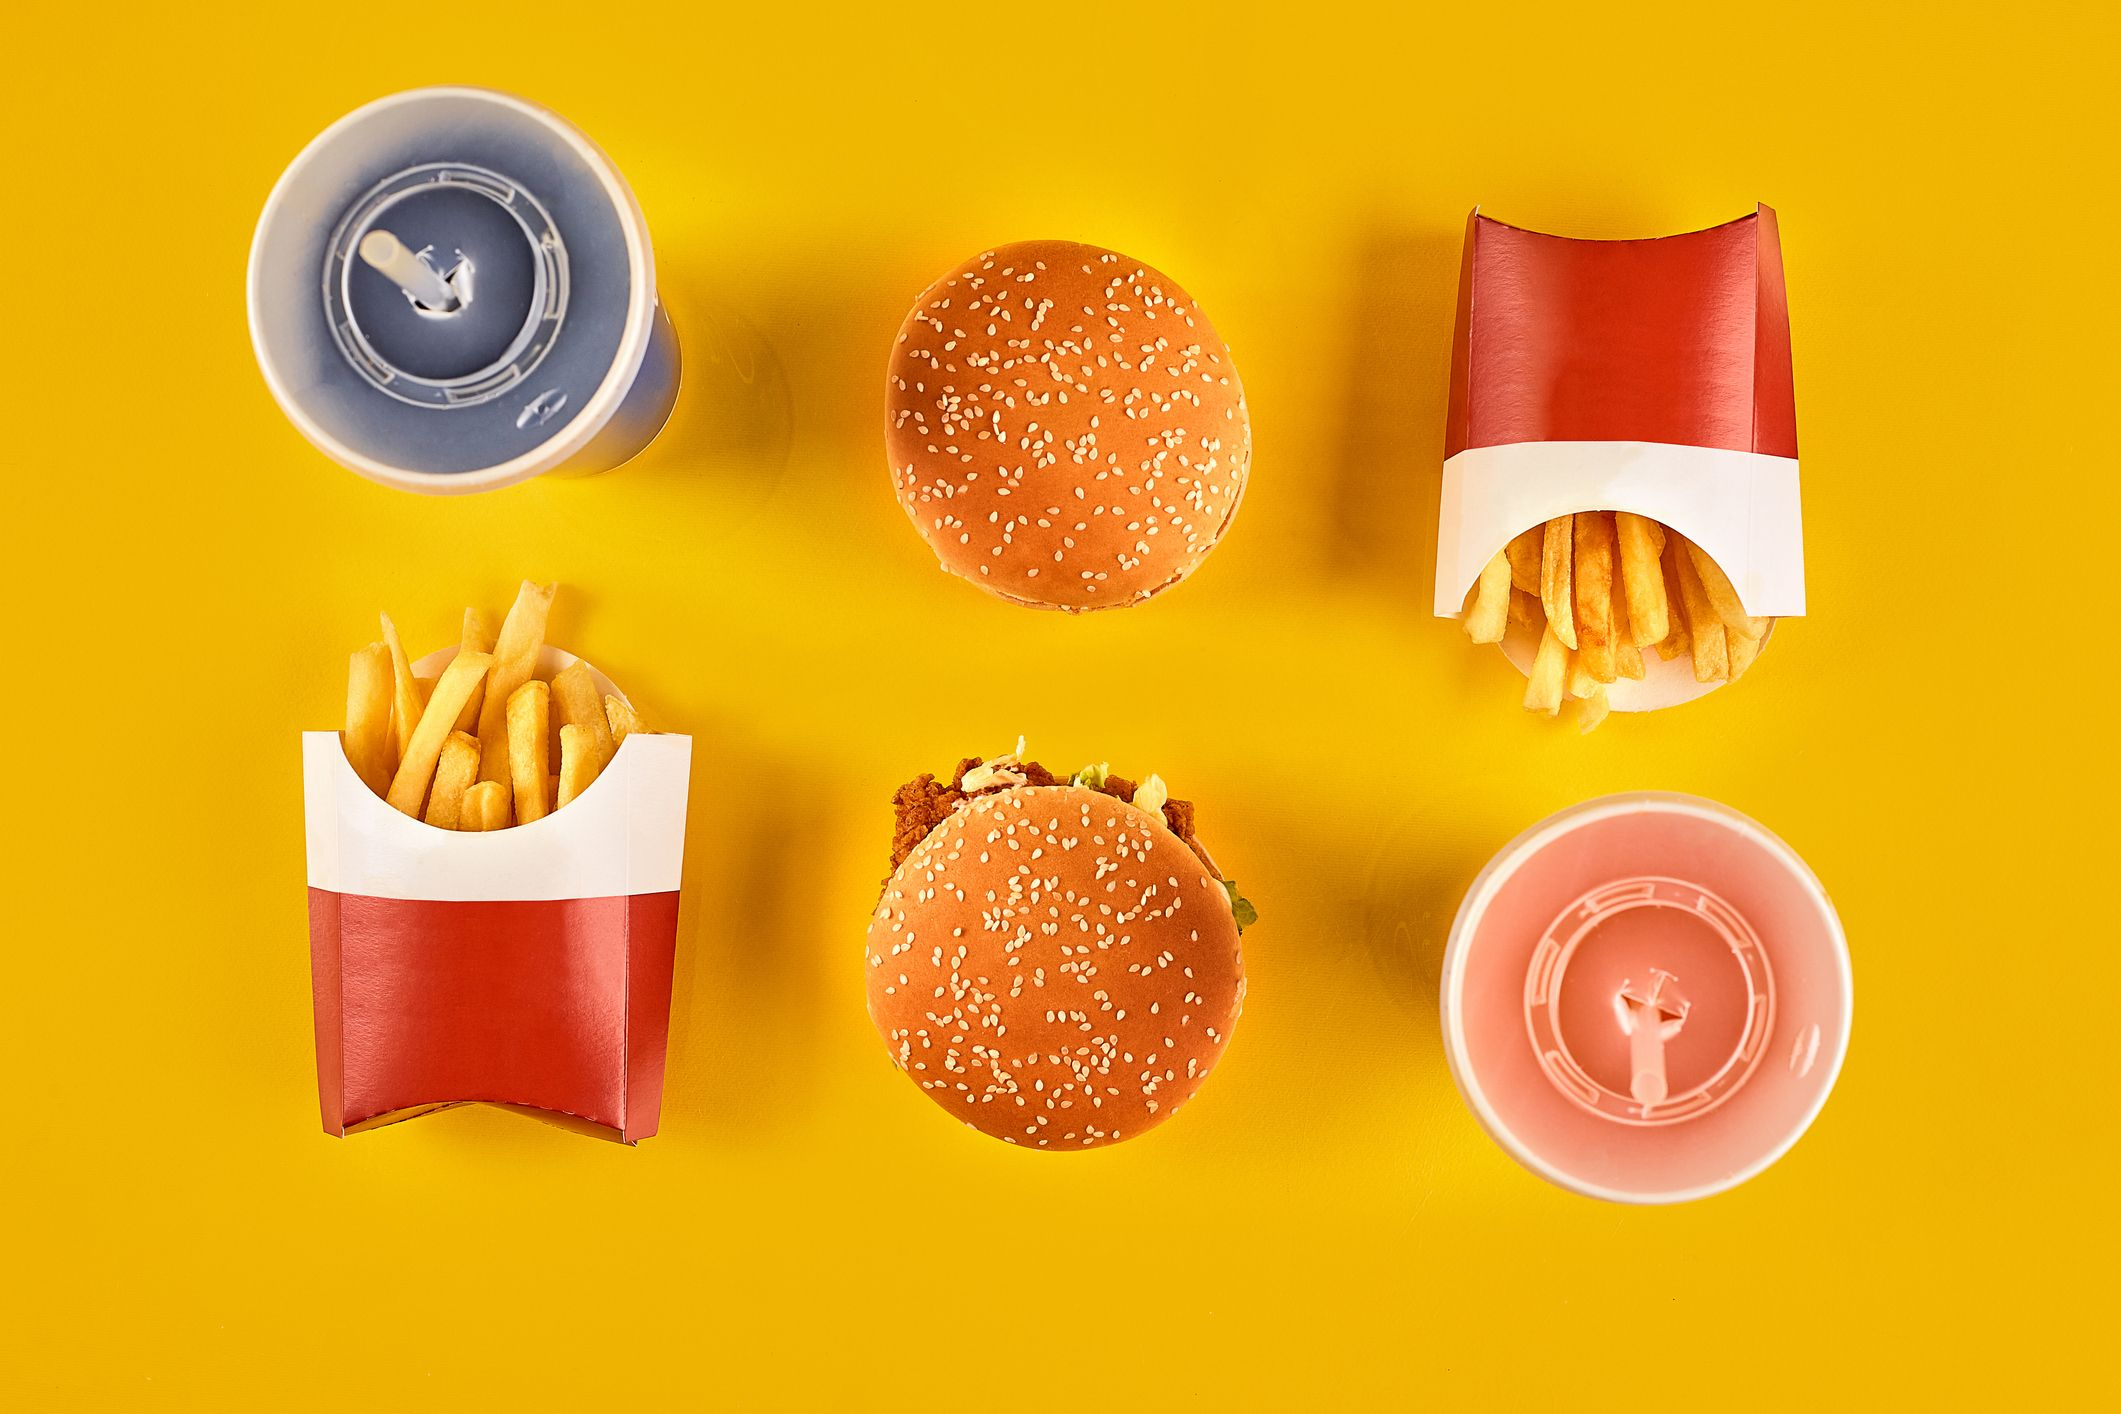 15 Healthy Fast Food Restaurants, According To Nutritionists